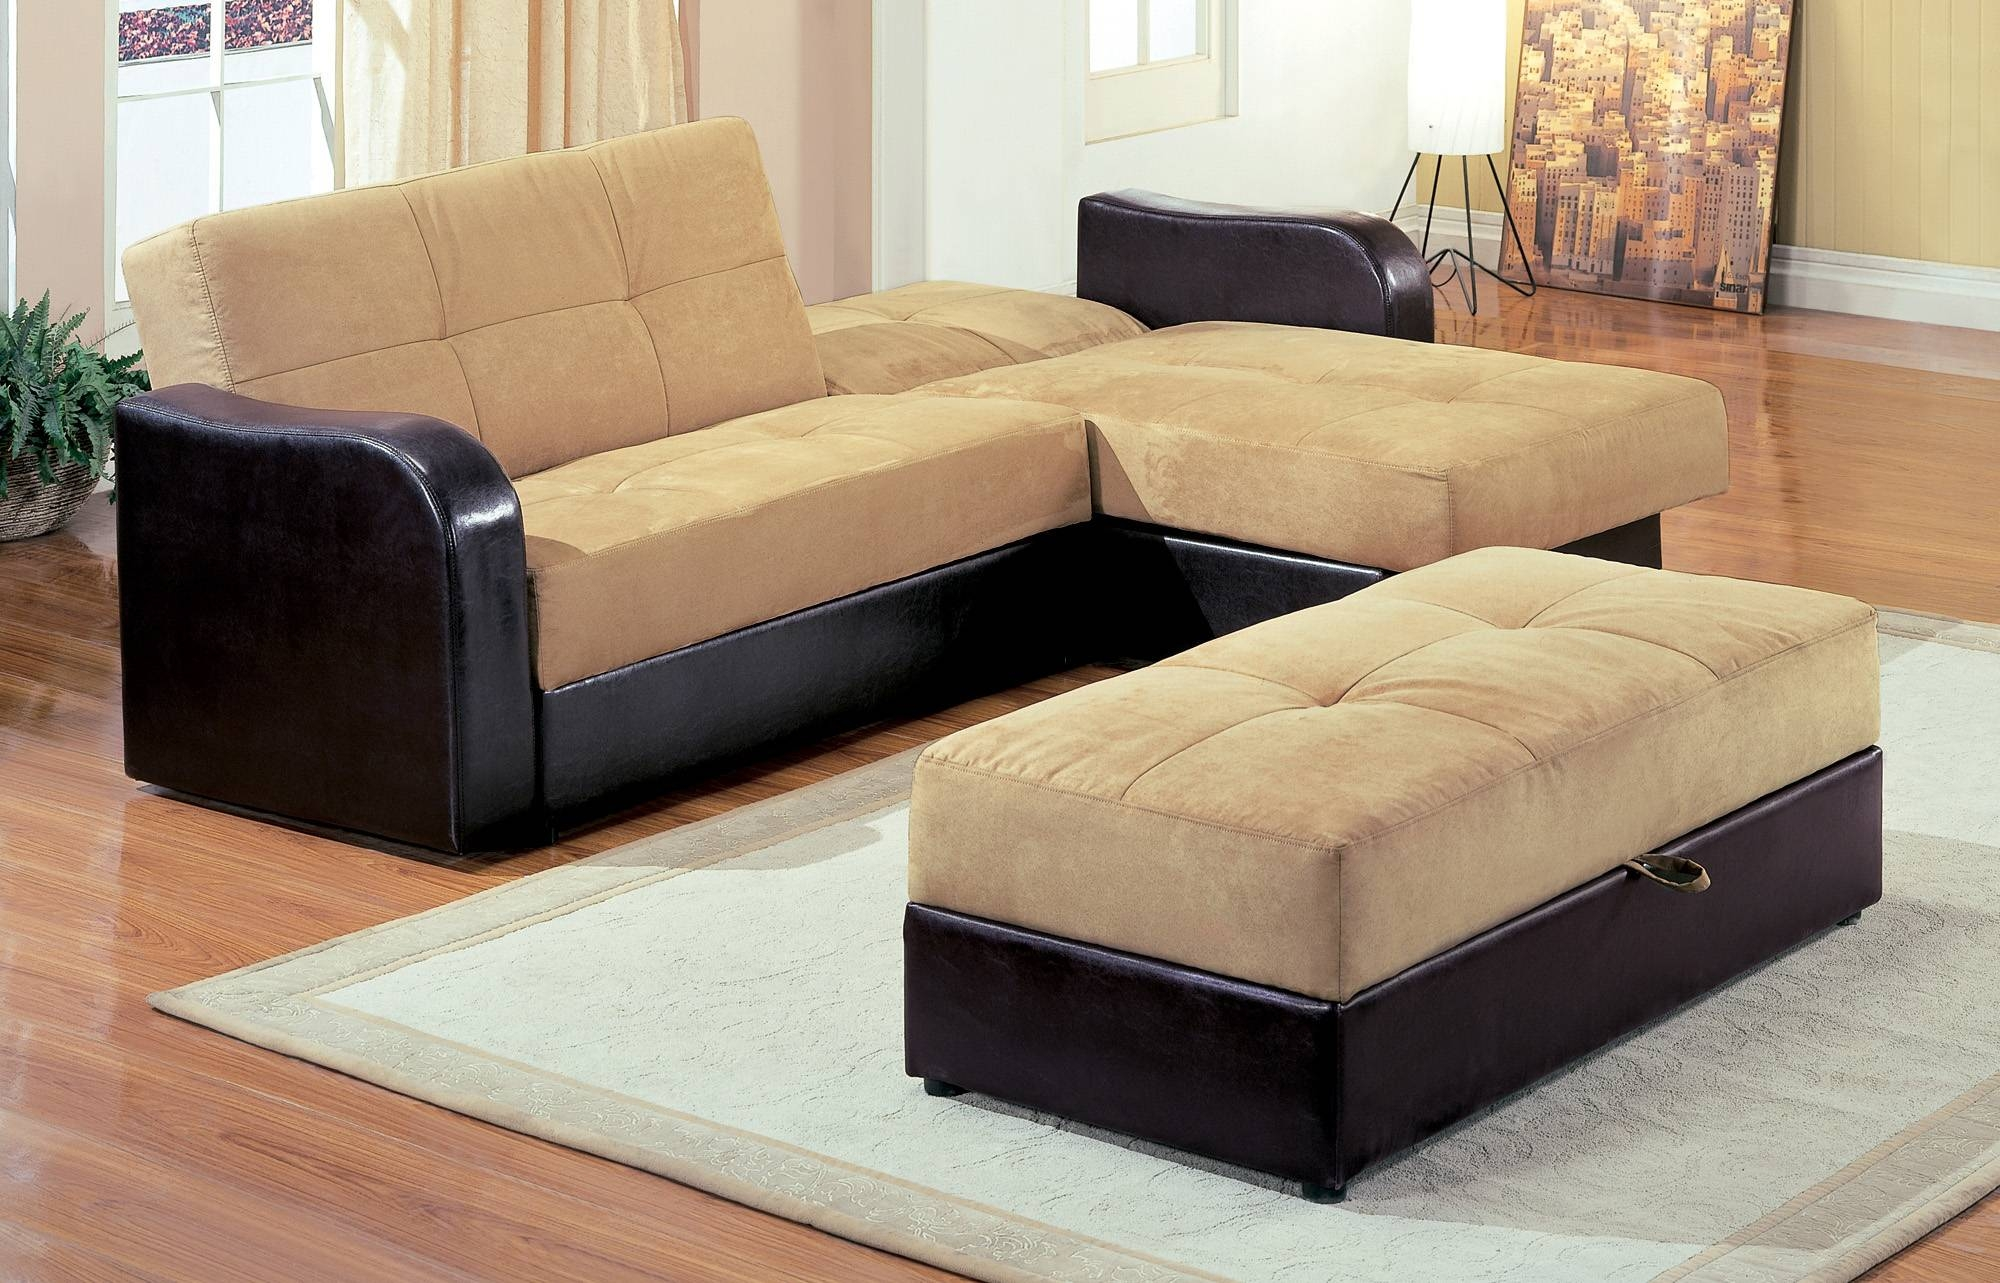 Inspiring C Shaped Sectional Sofa 20 In Cheap U Shaped Sectional in C Shaped Sectional Sofa (Image 14 of 30)